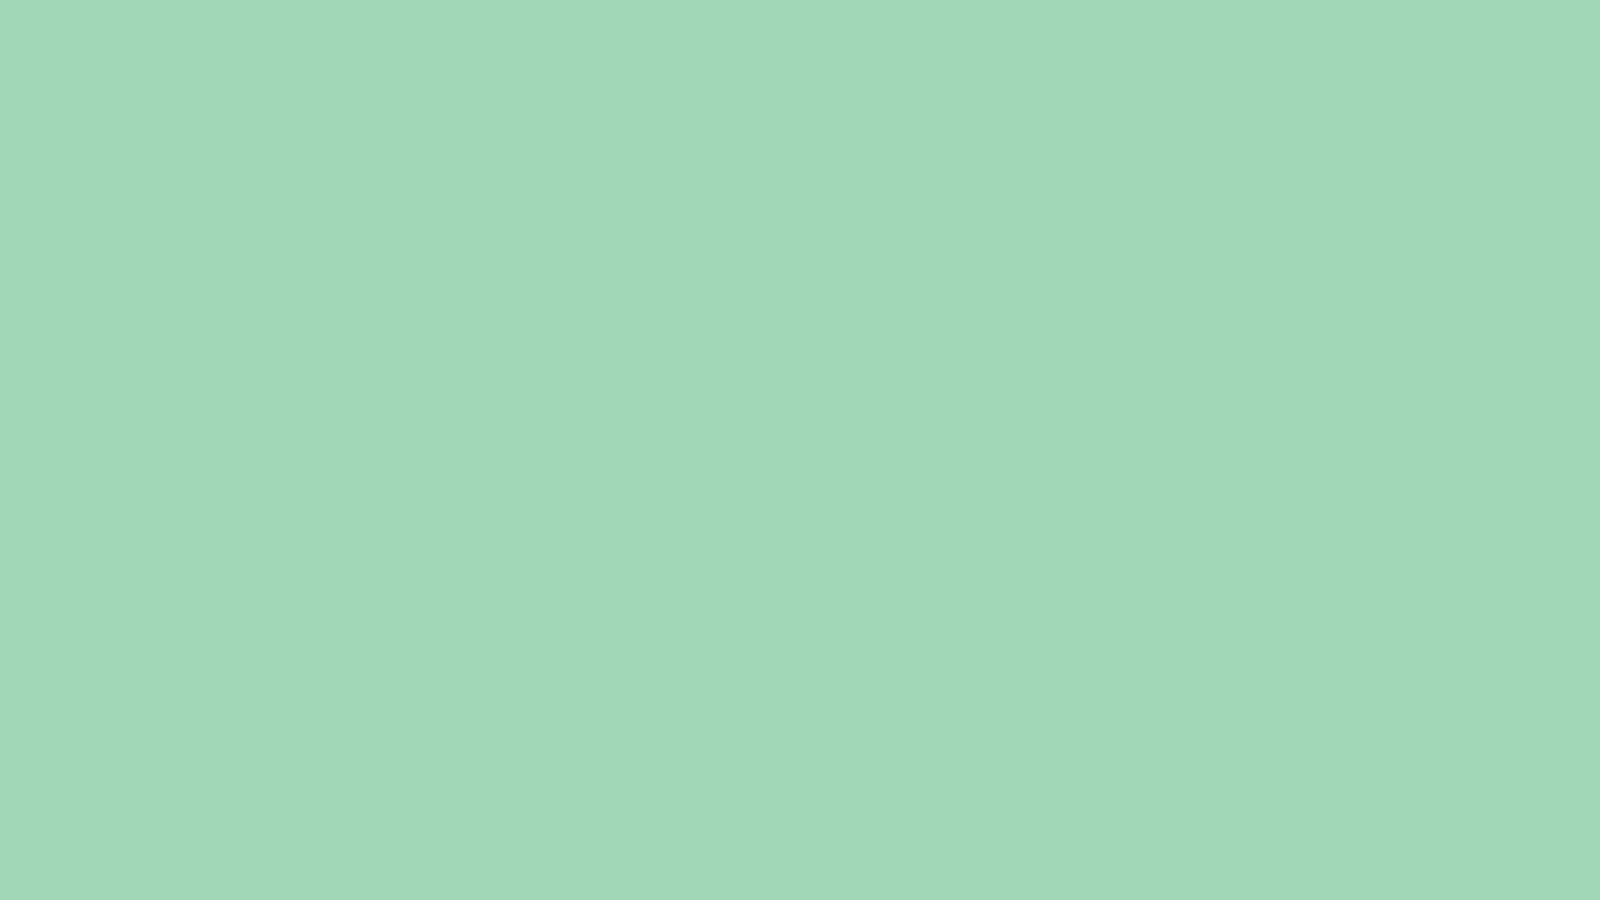 1600x900 Turquoise Green Solid Color Background